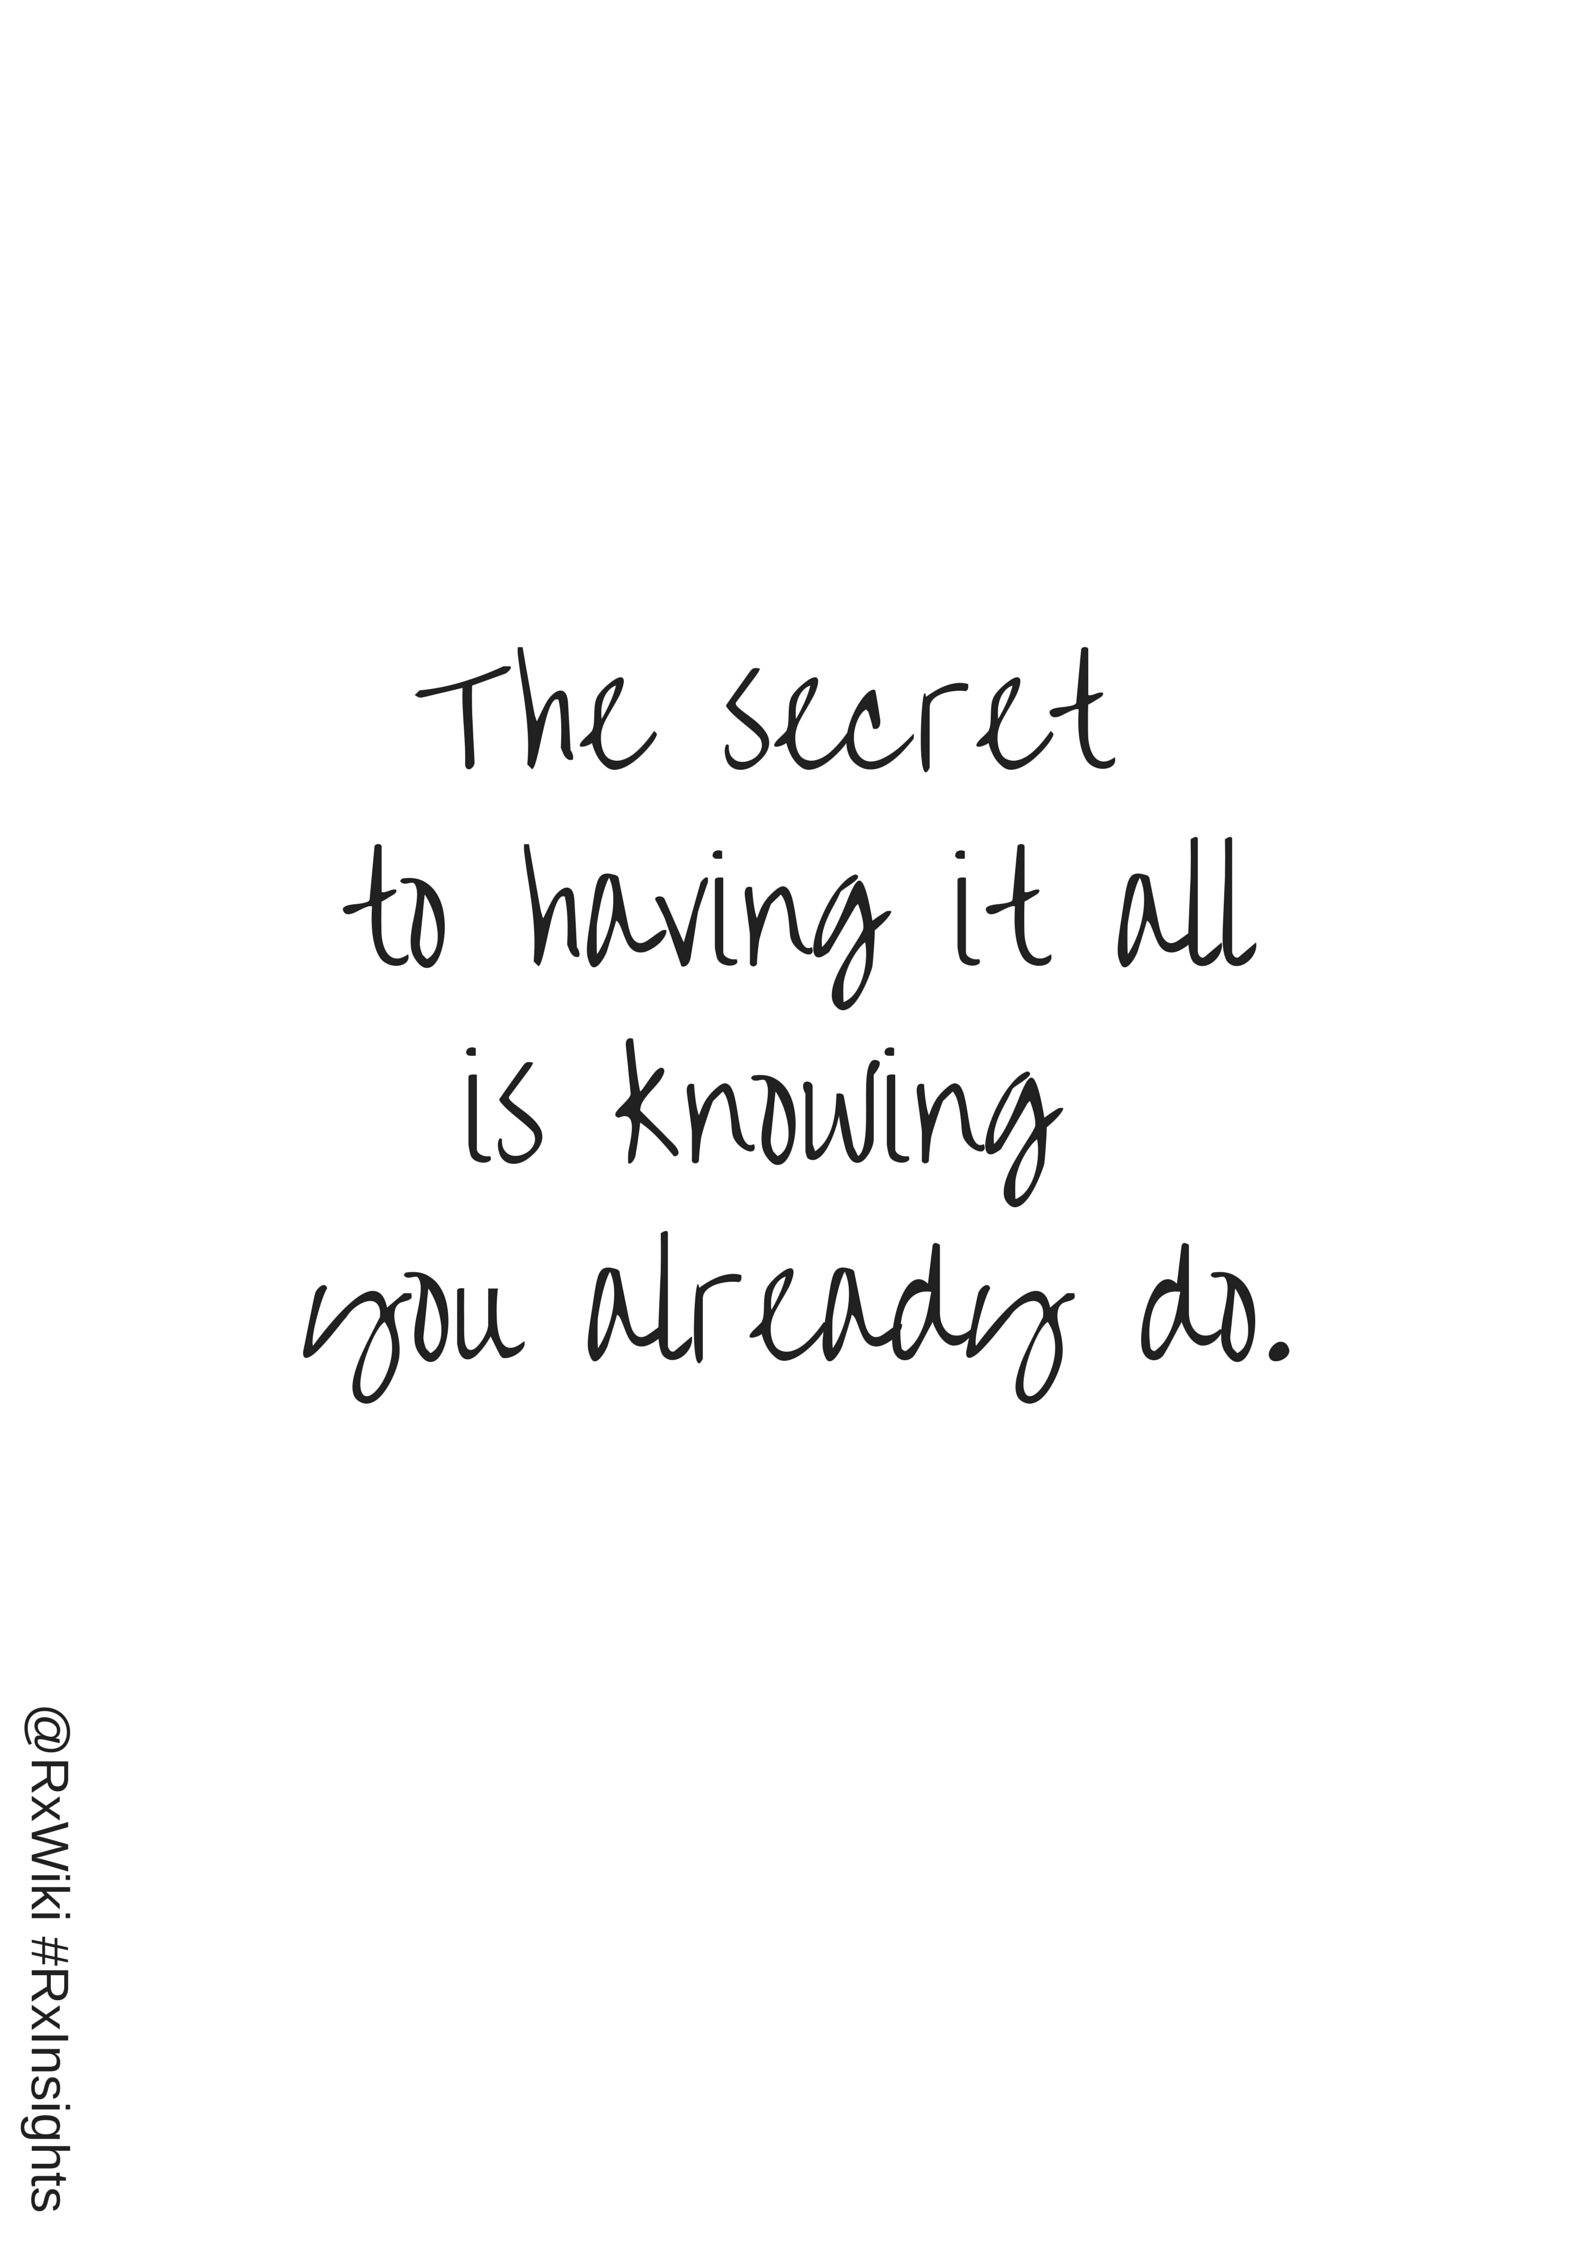 I Love My Life Quotes Endearing The Secret To Having It All Is Knowing You Already Do #quote #secret